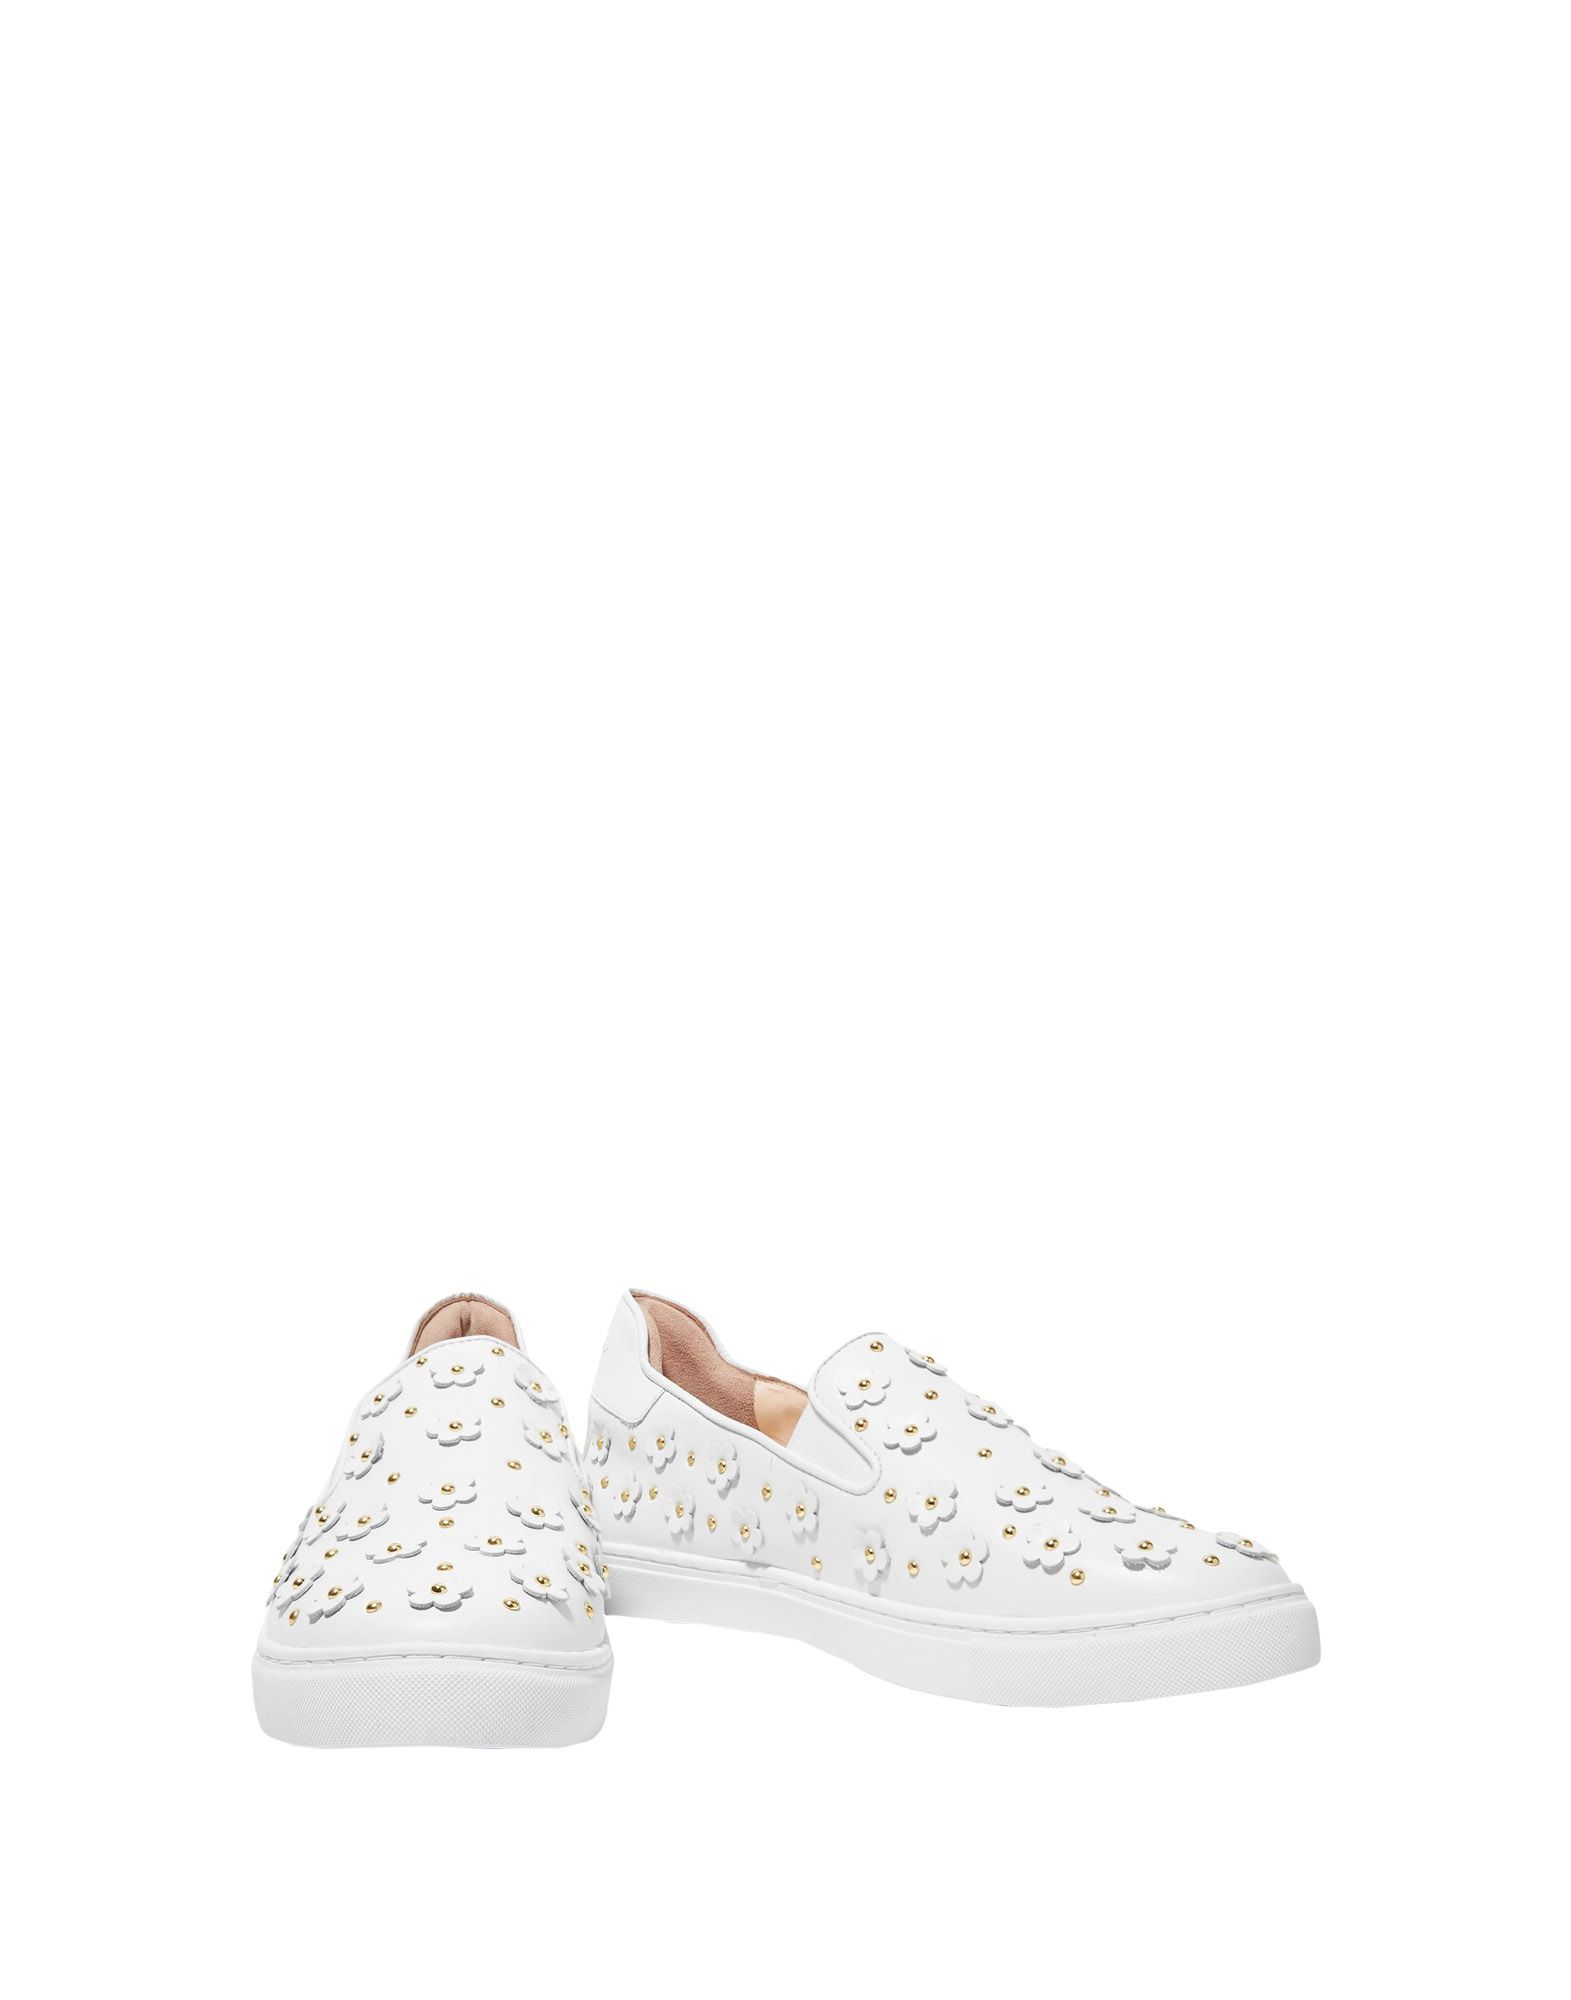 Sneakers Isa Tapia Donna - 11524325LL